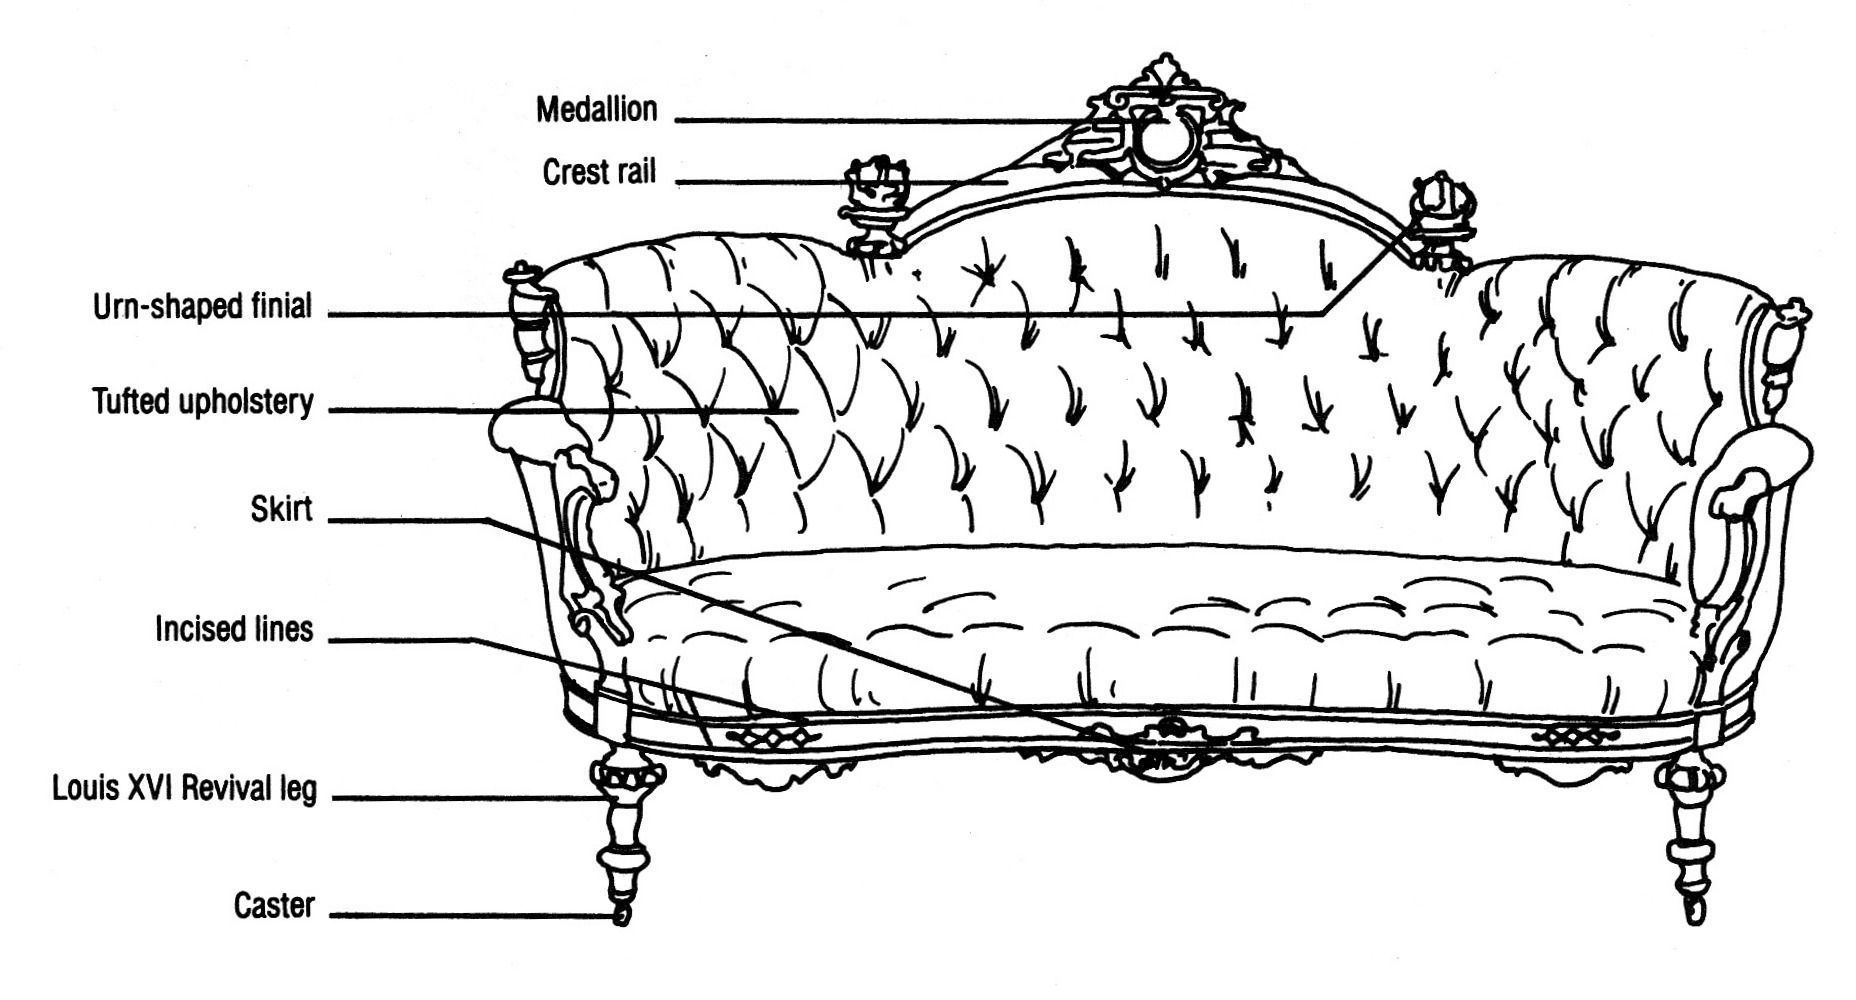 Diagram Of Renaissance Revival Sofa Probably From New York